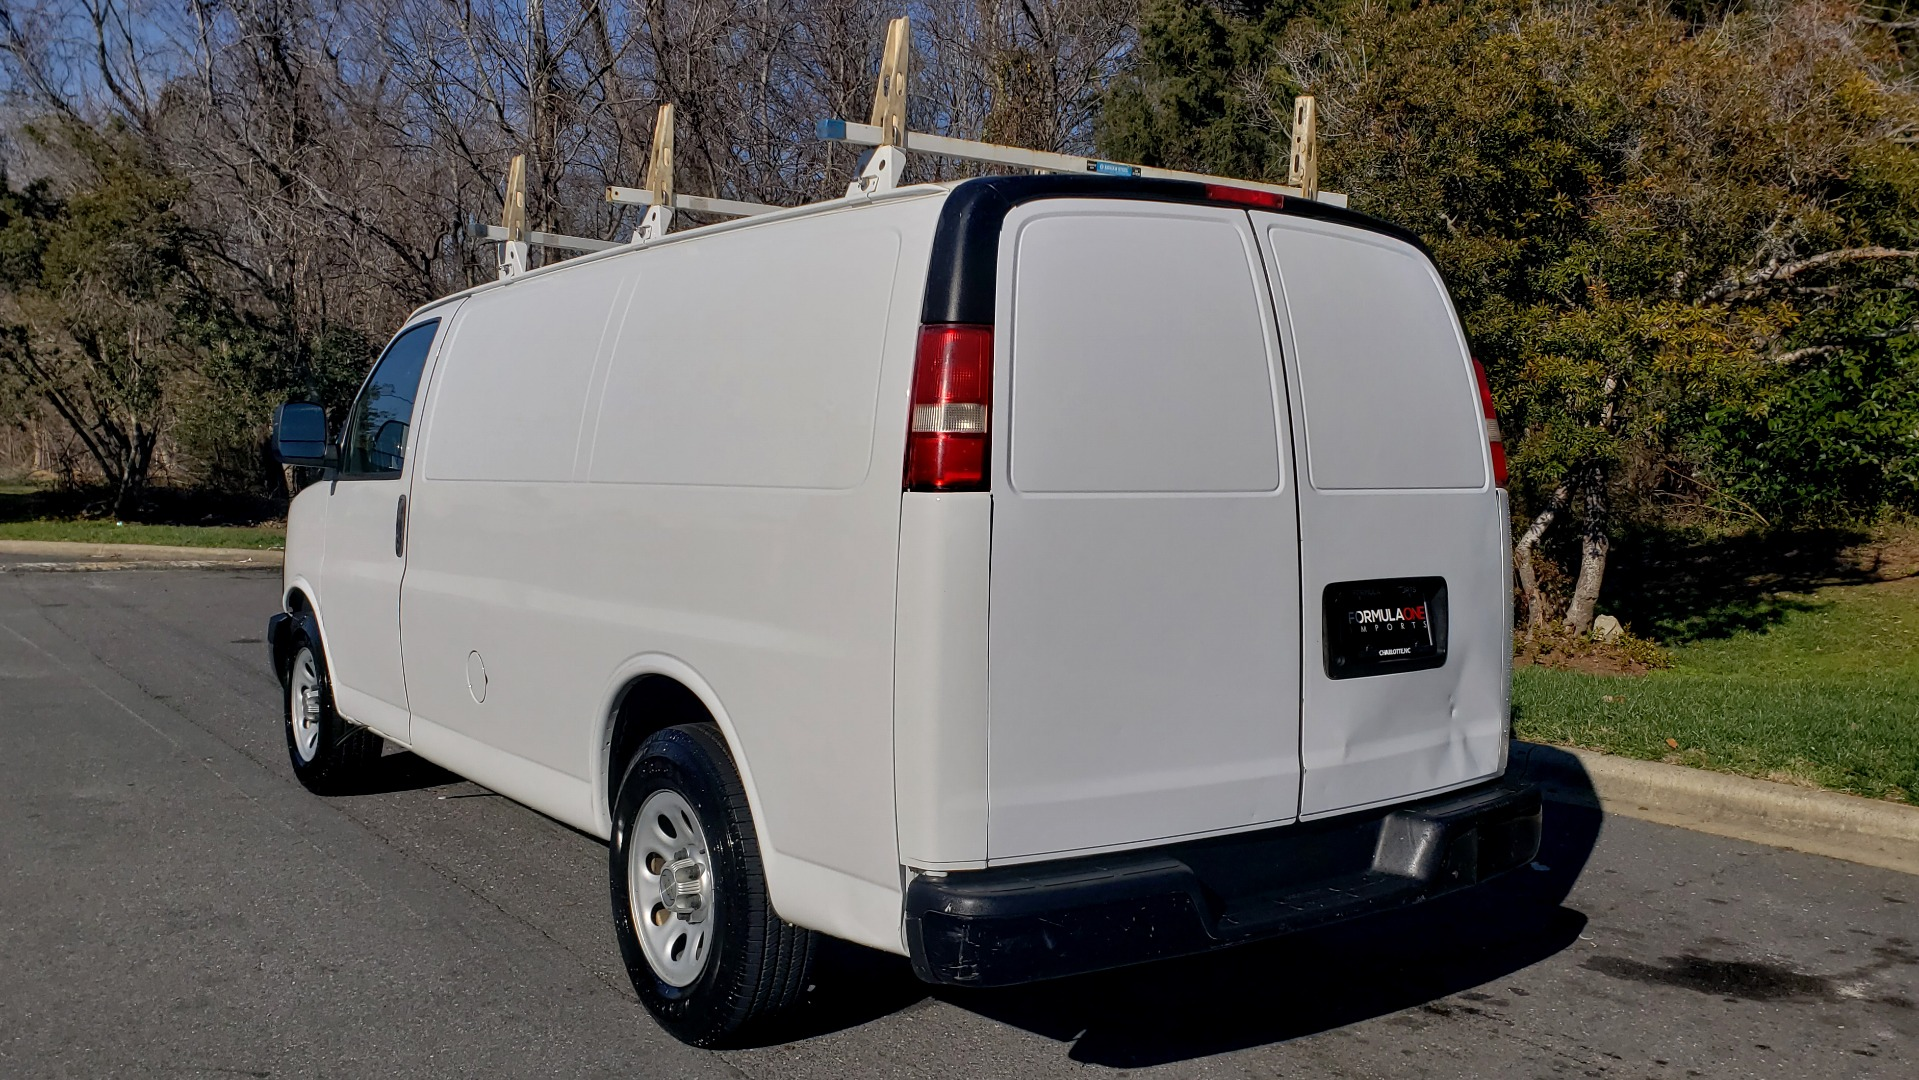 Used 2012 Chevrolet EXPRESS WORK VAN 1500 / 135 WB / 4.3L V6 / 4-SPD AUTO / ROOF RACK for sale $11,600 at Formula Imports in Charlotte NC 28227 3